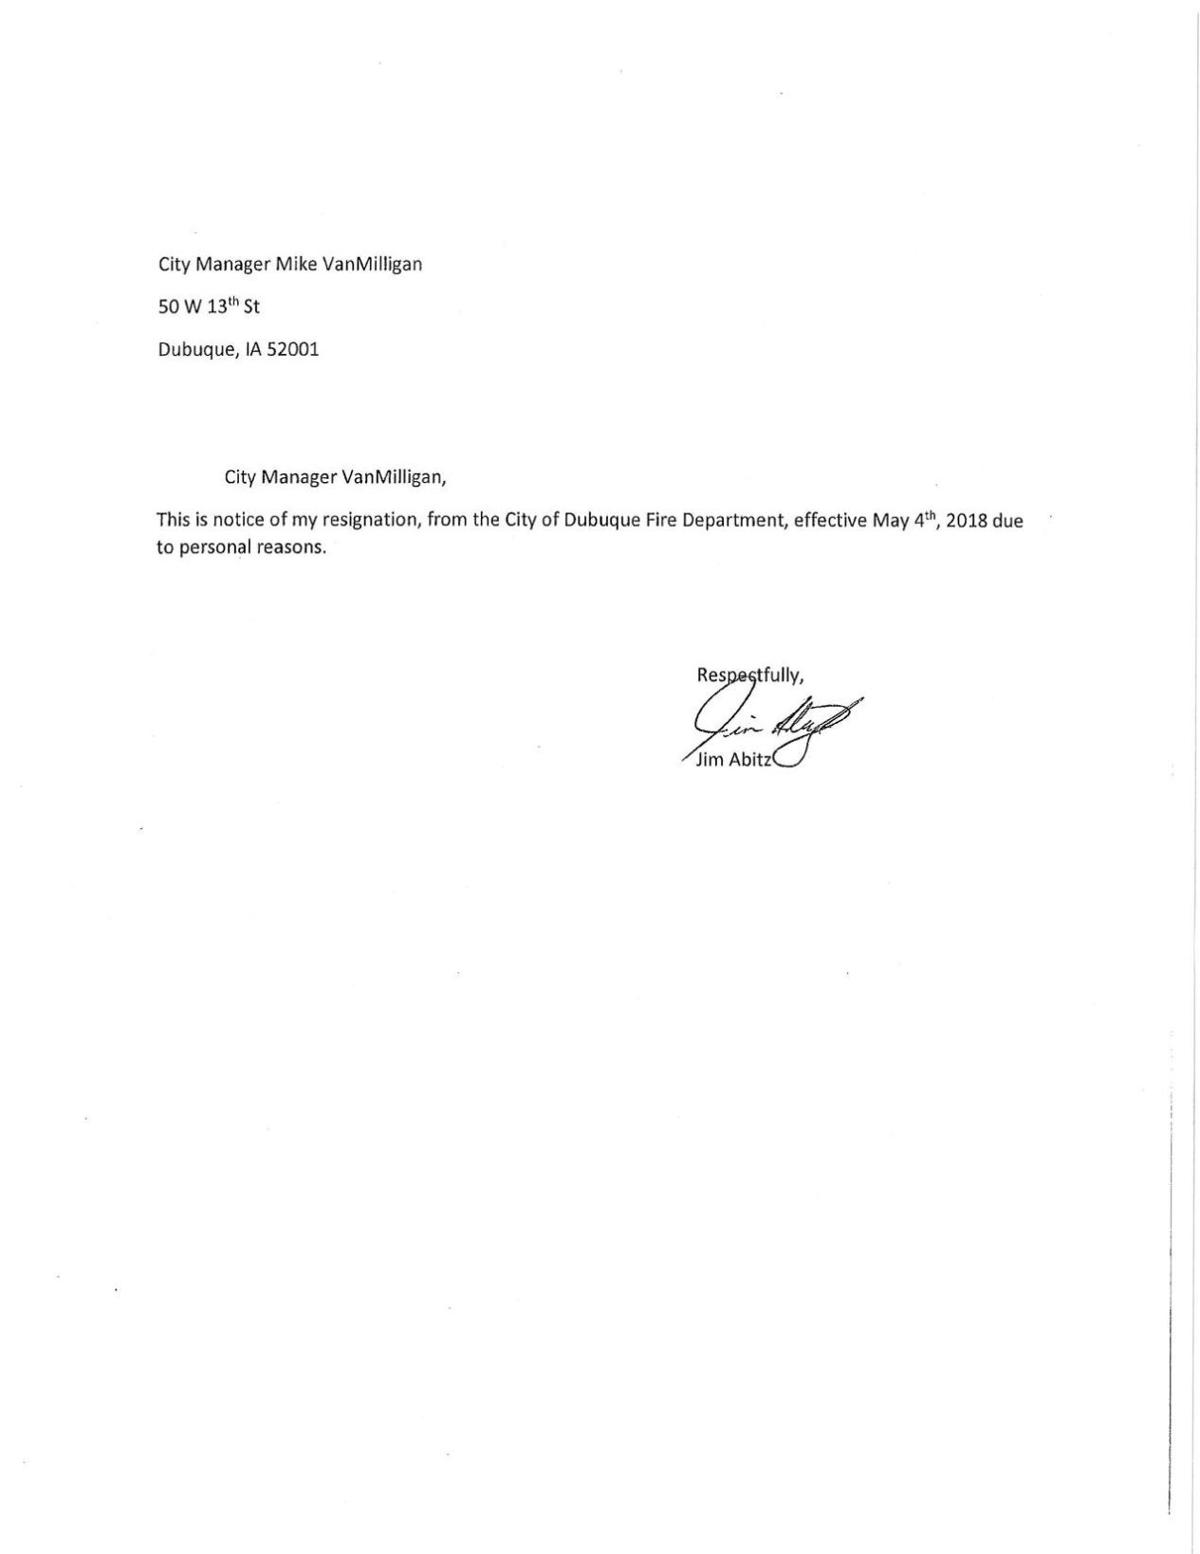 Effective Immediately Resignation Letter from bloximages.newyork1.vip.townnews.com